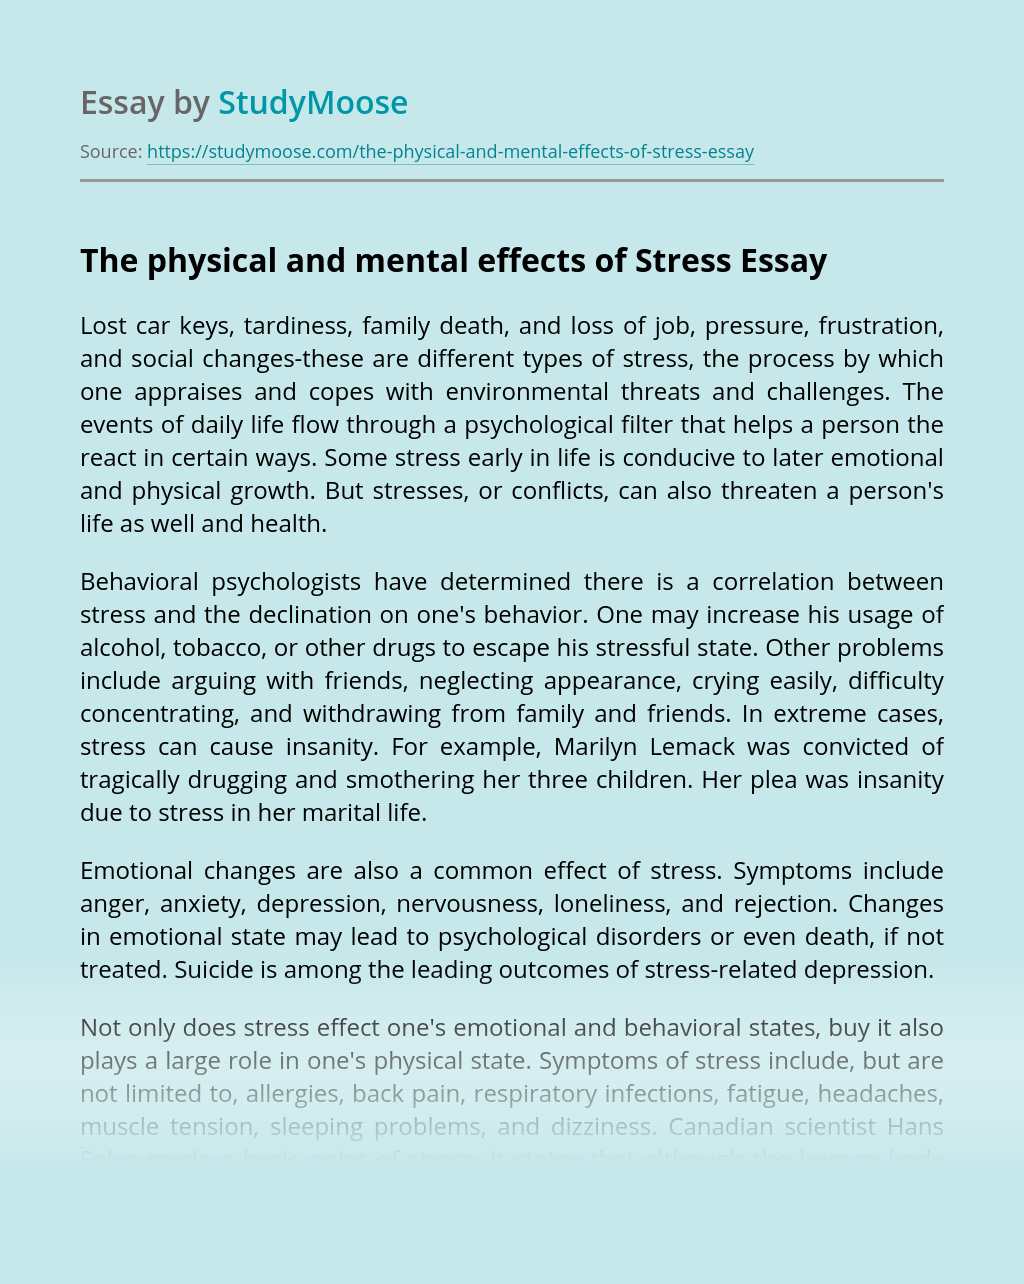 The physical and mental effects of Stress